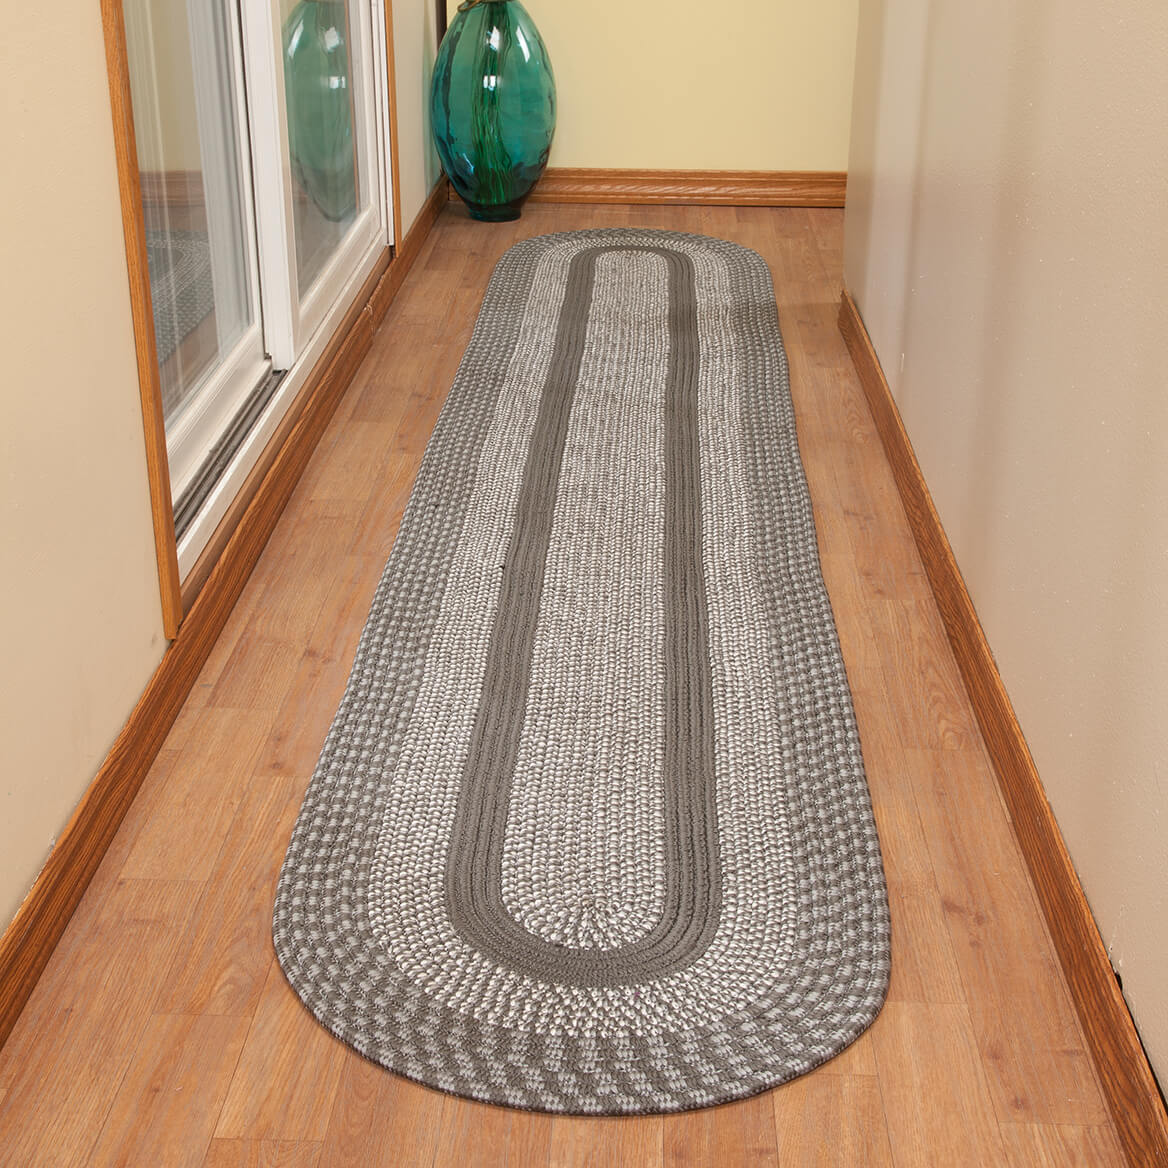 Two-Tone Country Braided Rug by OakRidge        XL-363863